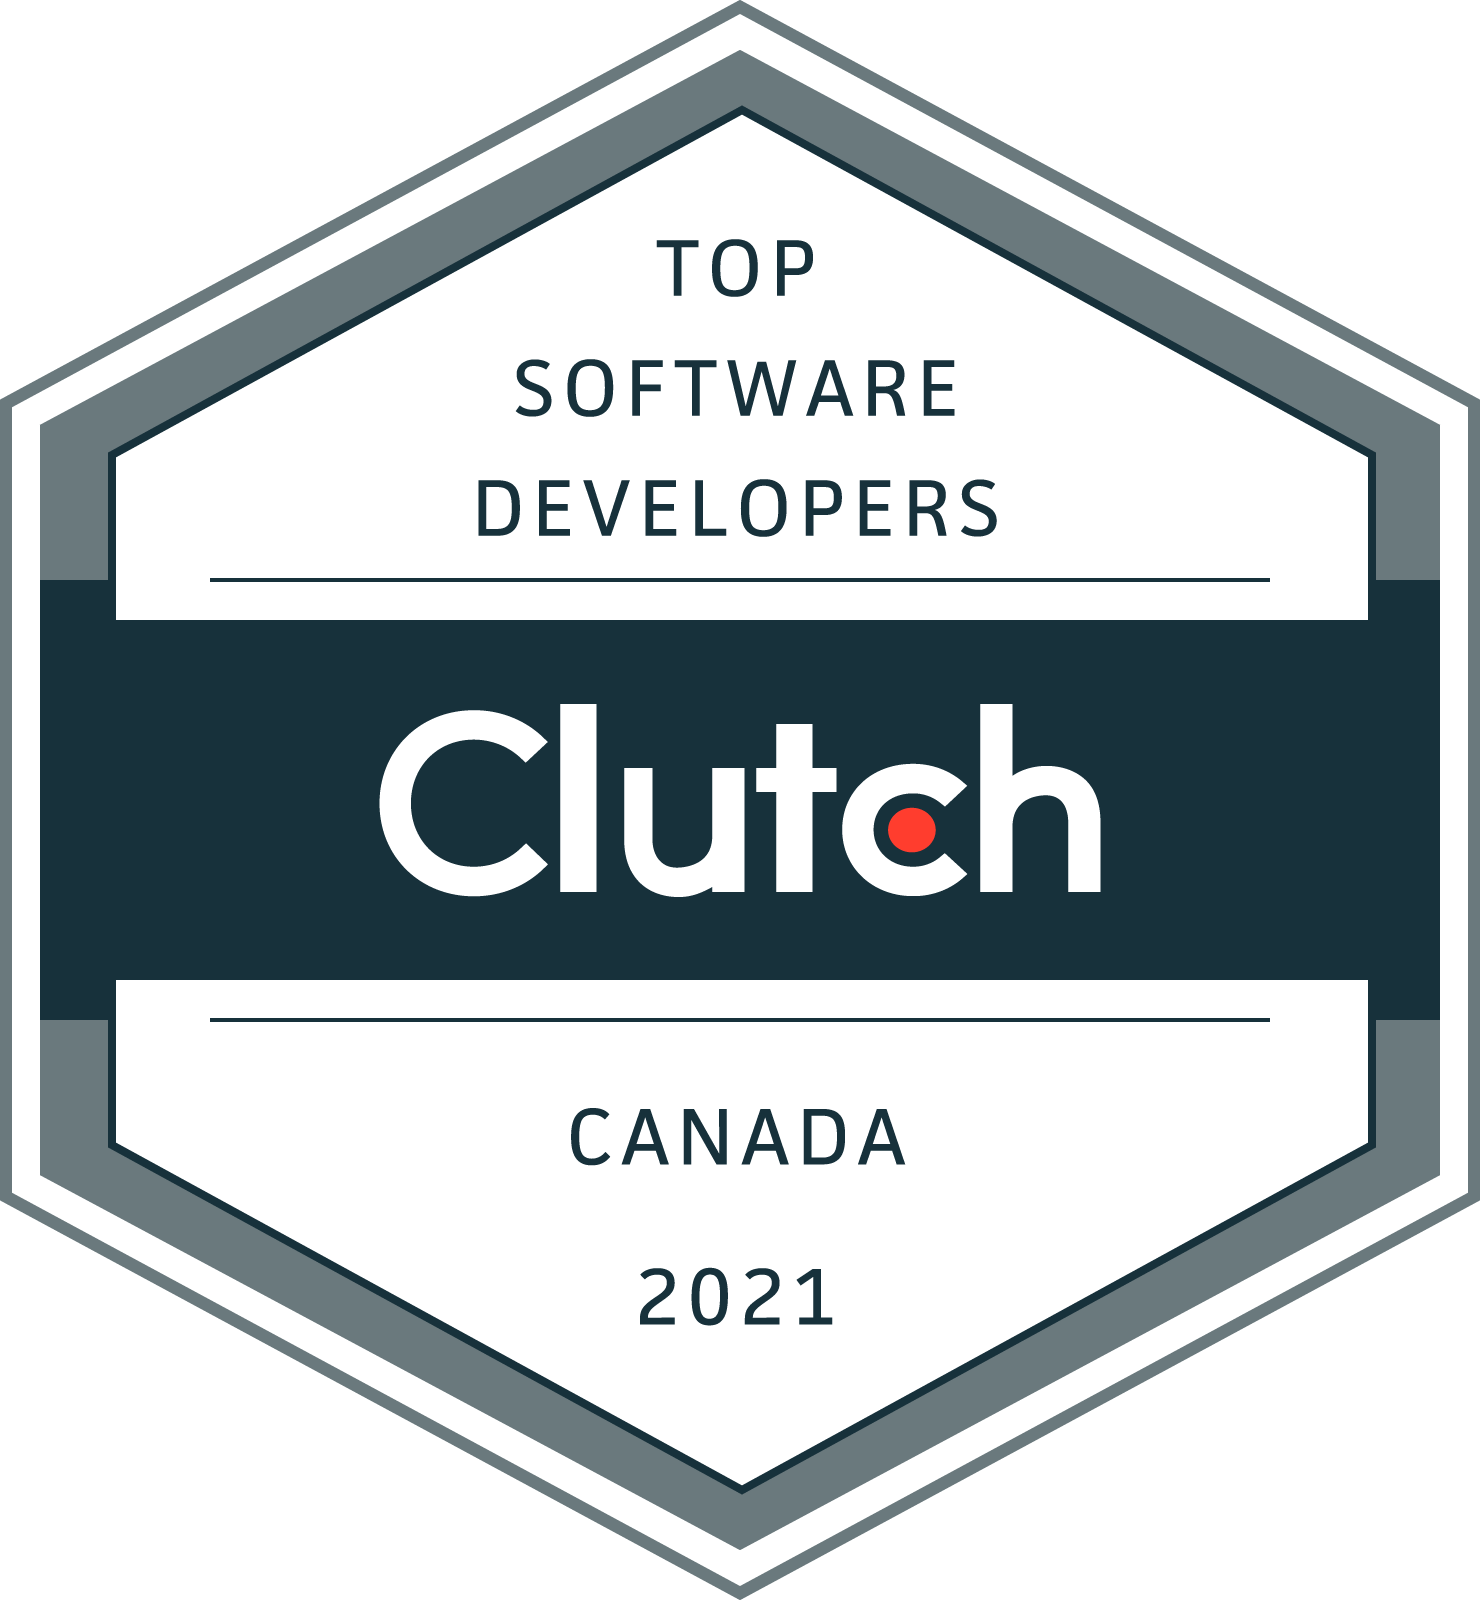 Canada's Top Software Developers Award 2021